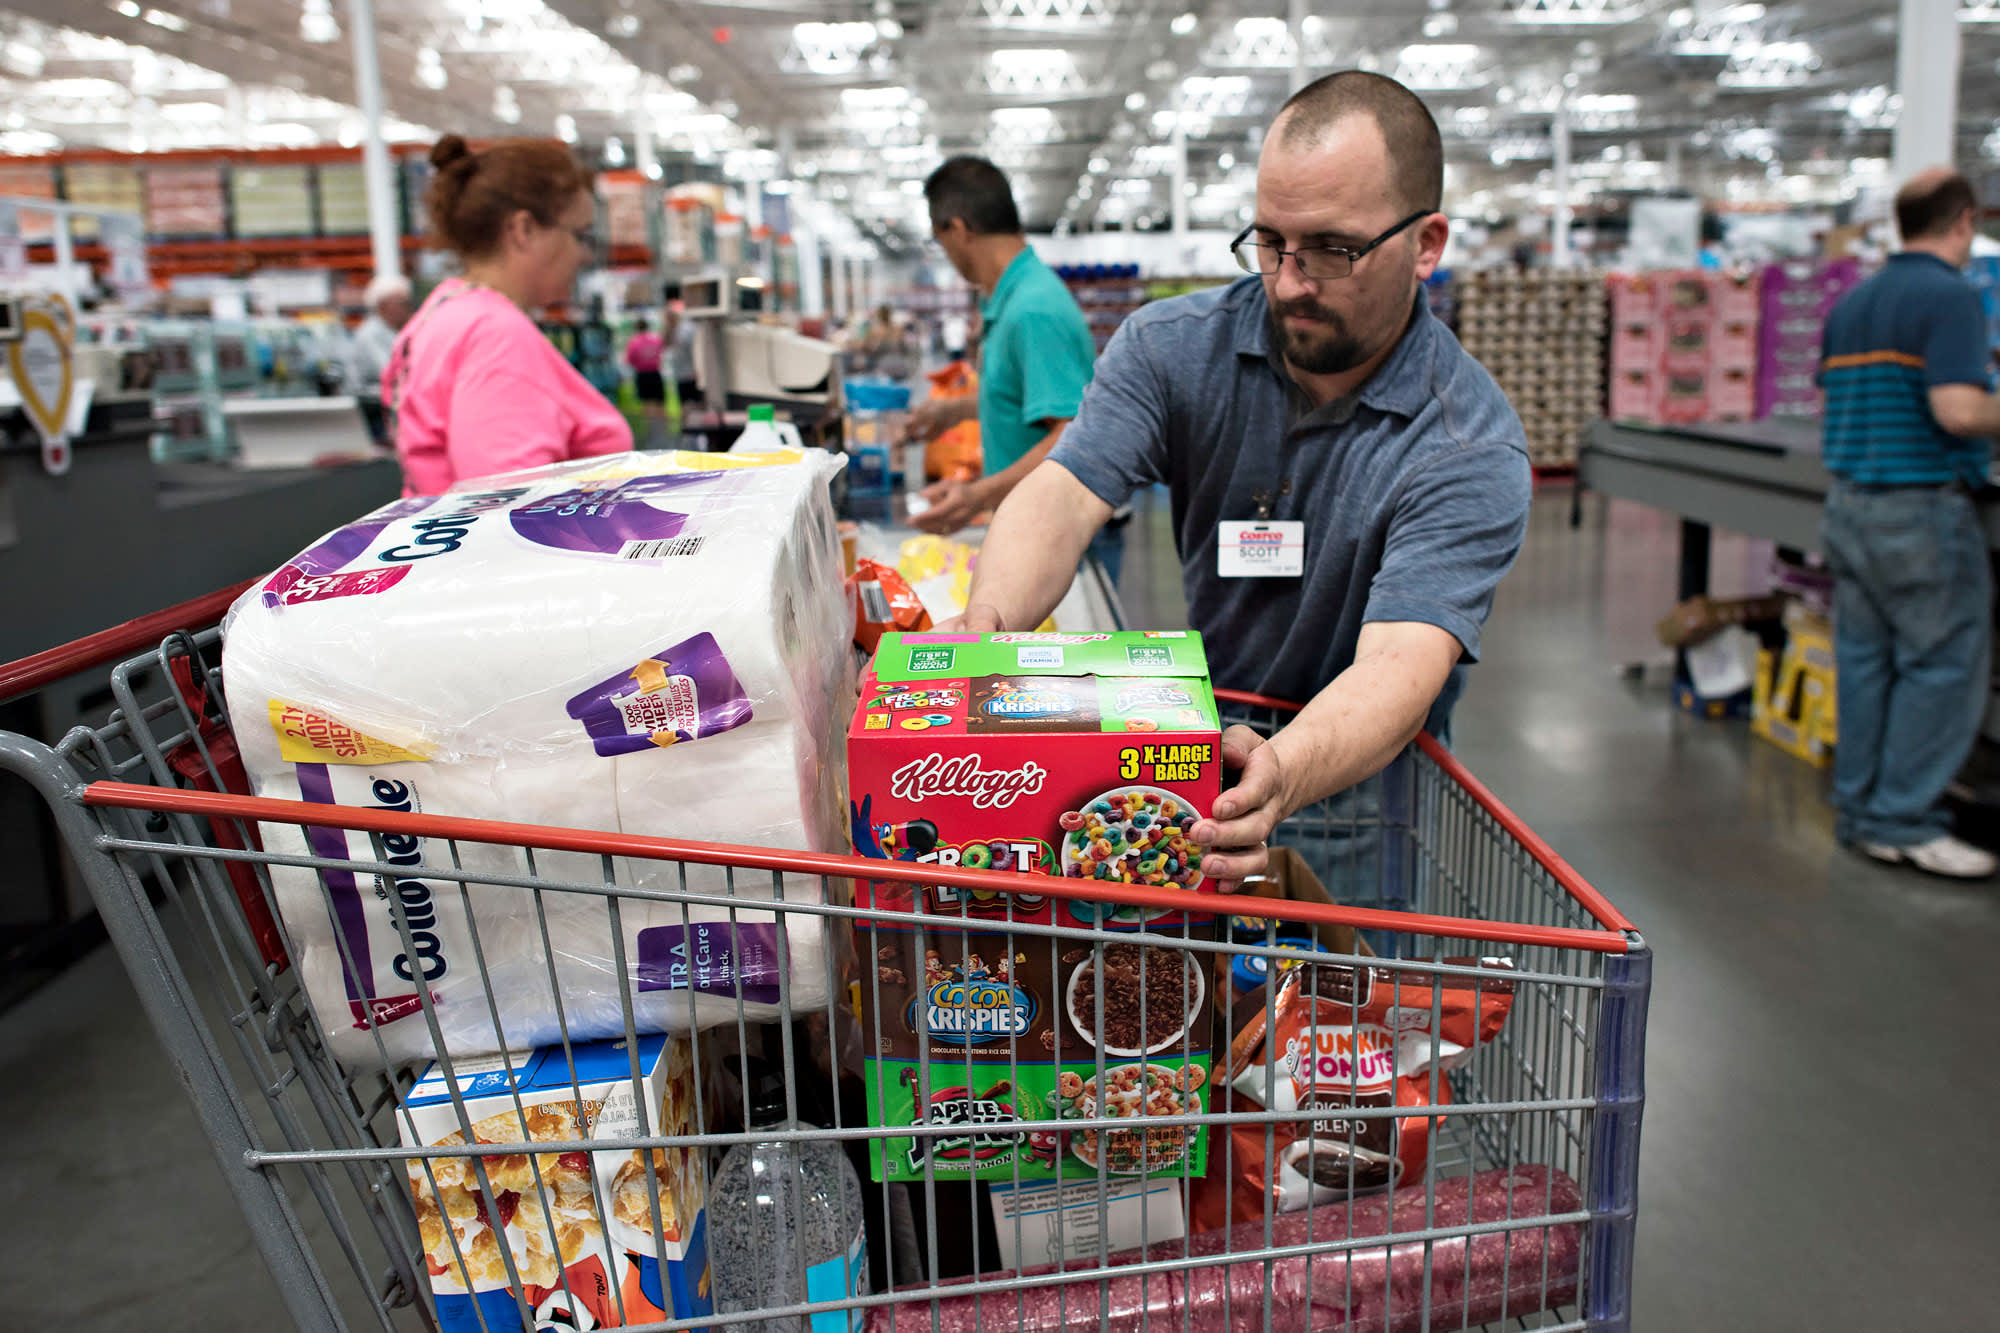 Jim Cramer says Bernstein's downgrade on Costco creates a buying opportunity